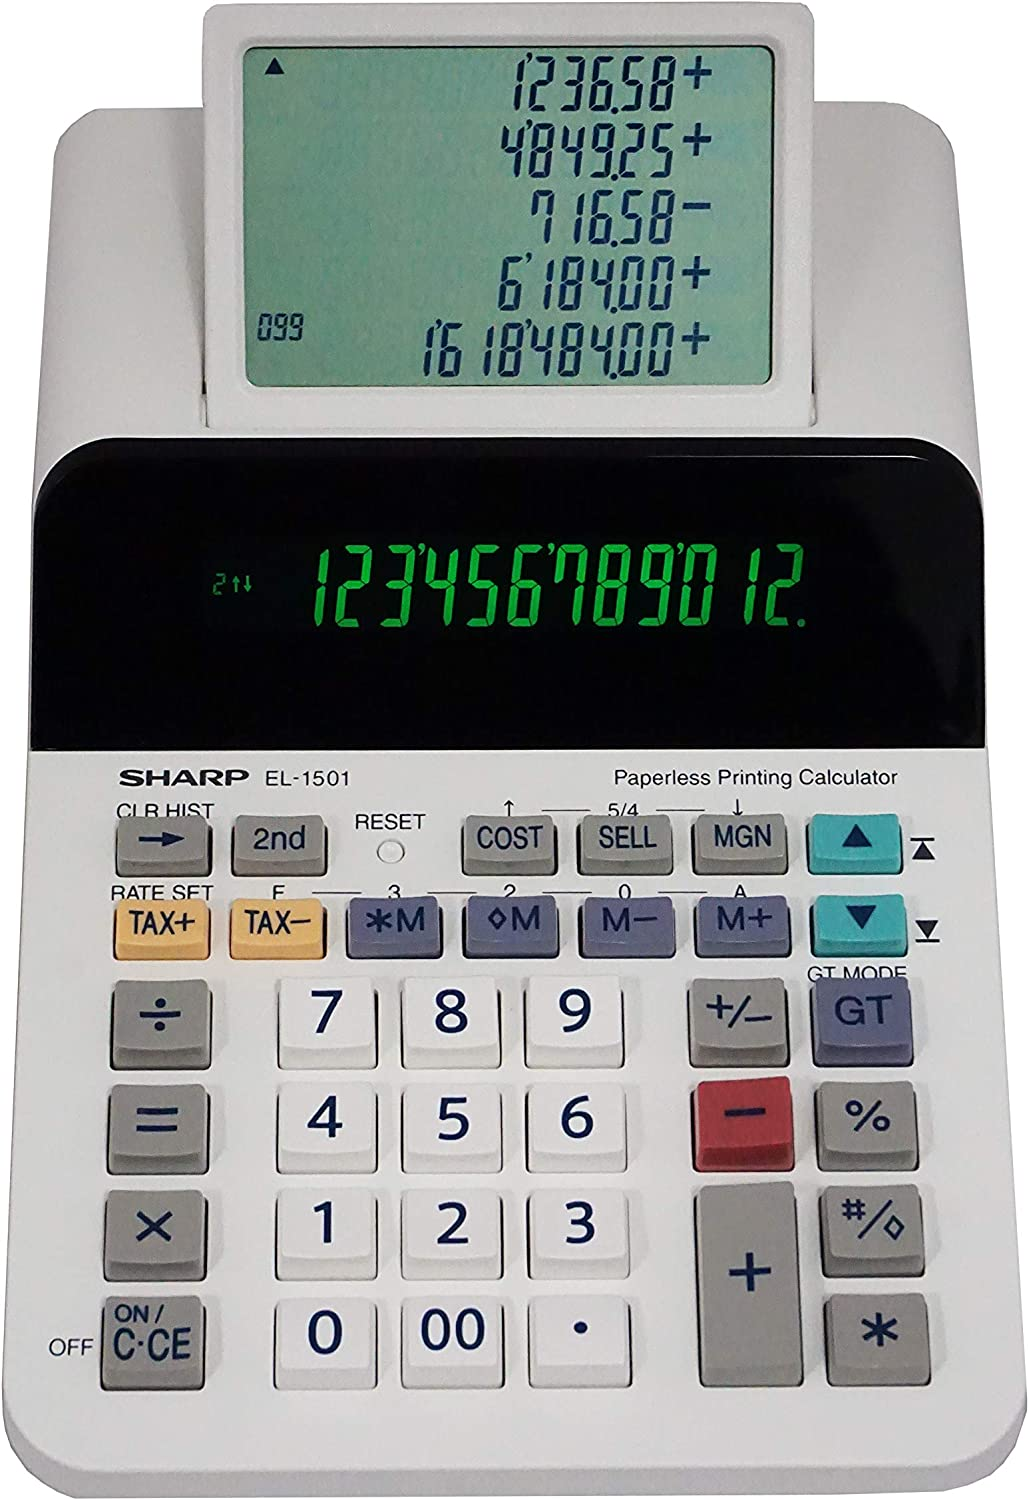 Sharp El-1501 Compact Cordless Paperless Large 12-Digit Display Desktop Printing Calculator That Utilizes Printing Calculator Logic